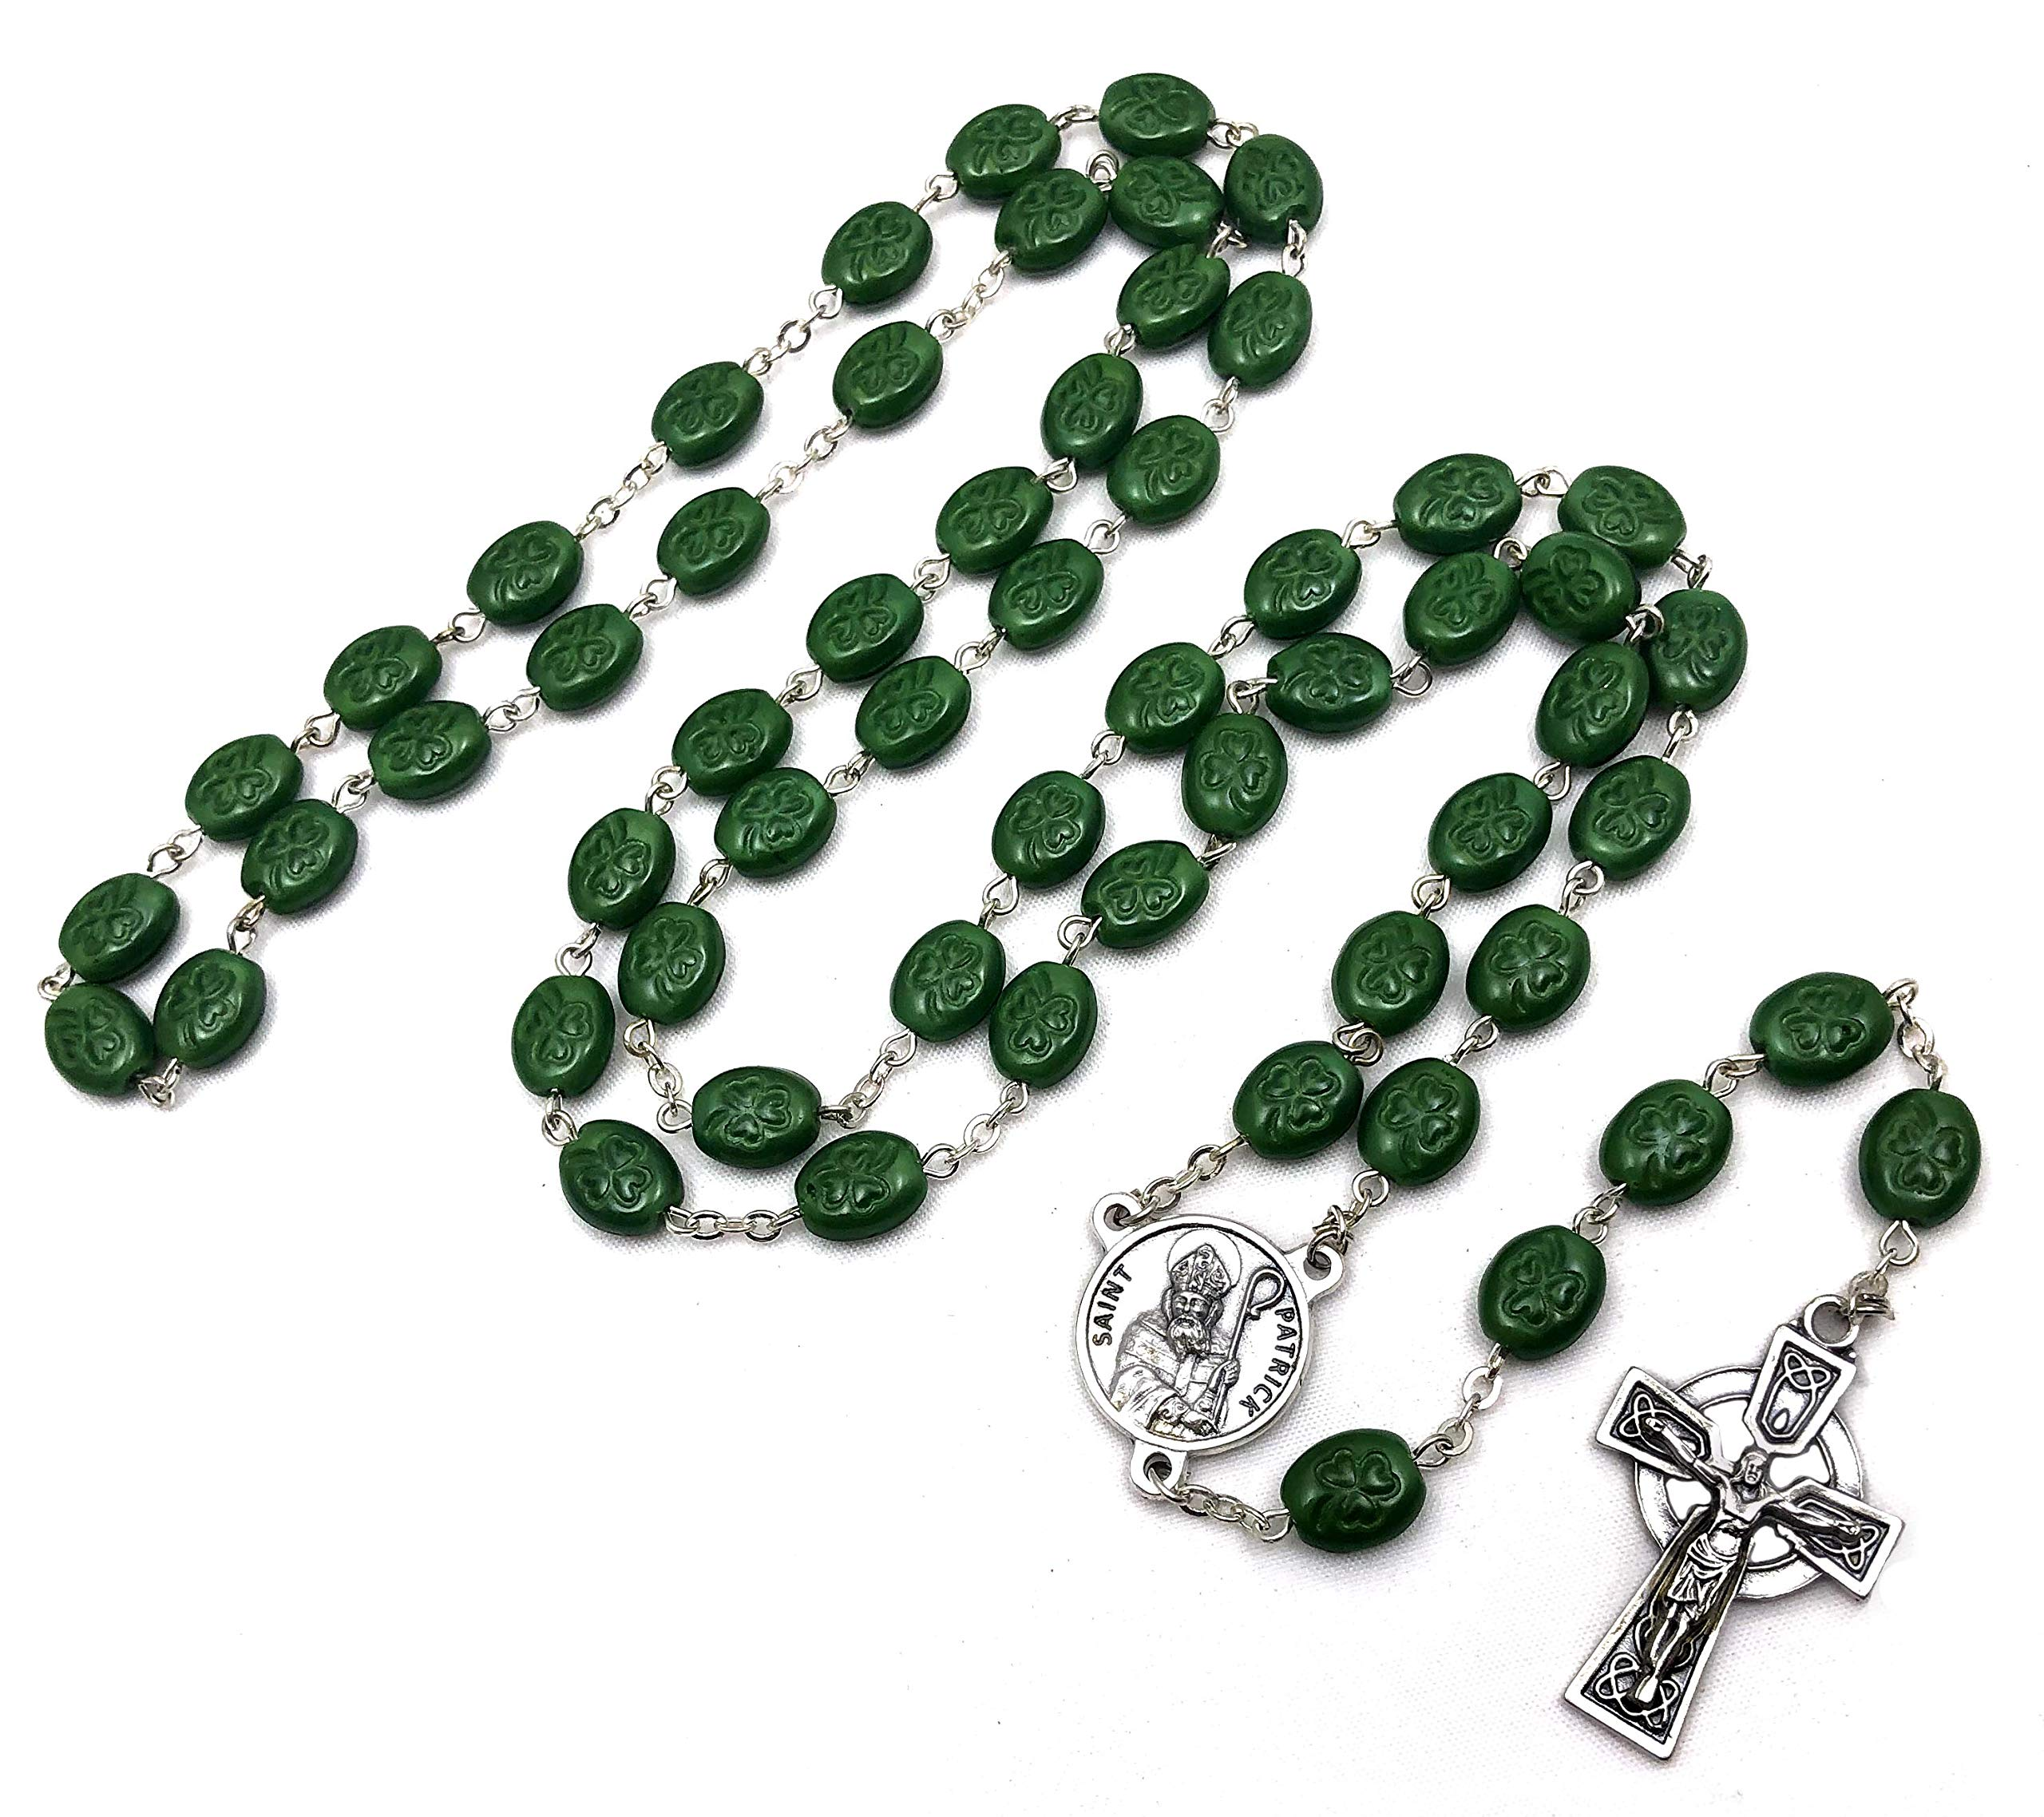 Elysian Gift Shop 24'' Irish Shamrock Beads Green Rosary with Silver Tone Celtic Cross and St. Patrick Medal Centerpiece